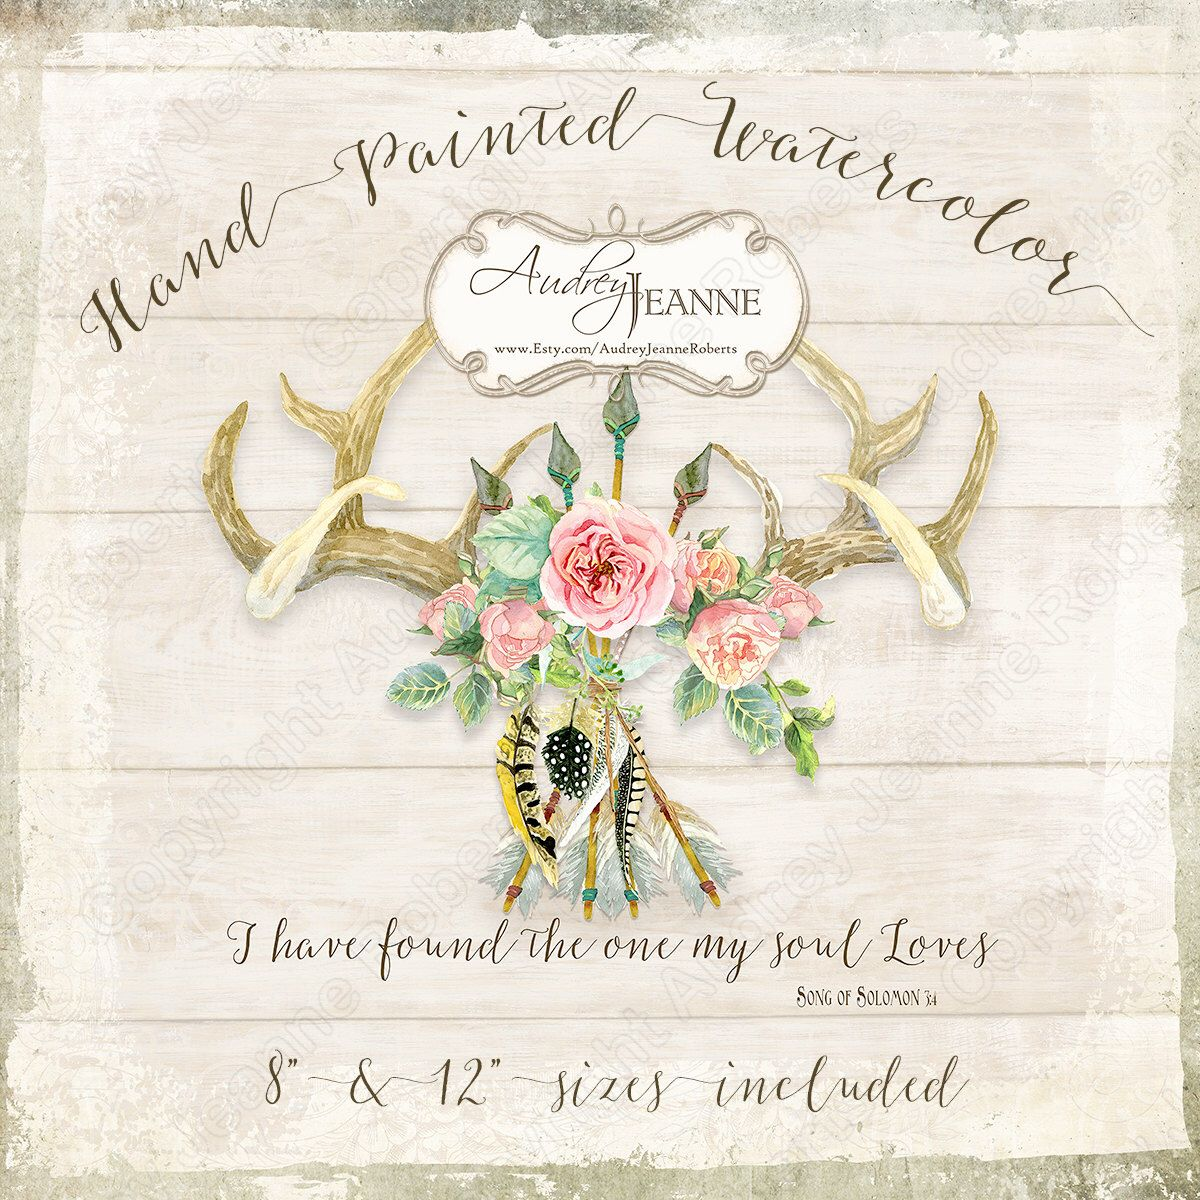 Watercolor Boho Deer Antlers, Rose Floral, Digital Clip Art Clipart, Bohemian Wedding Printable, Wall Art or Sign, Pillow Transfer Image by AudreyJeanneRoberts on Etsy https://www.etsy.com/listing/474470379/watercolor-boho-deer-antlers-rose-floral